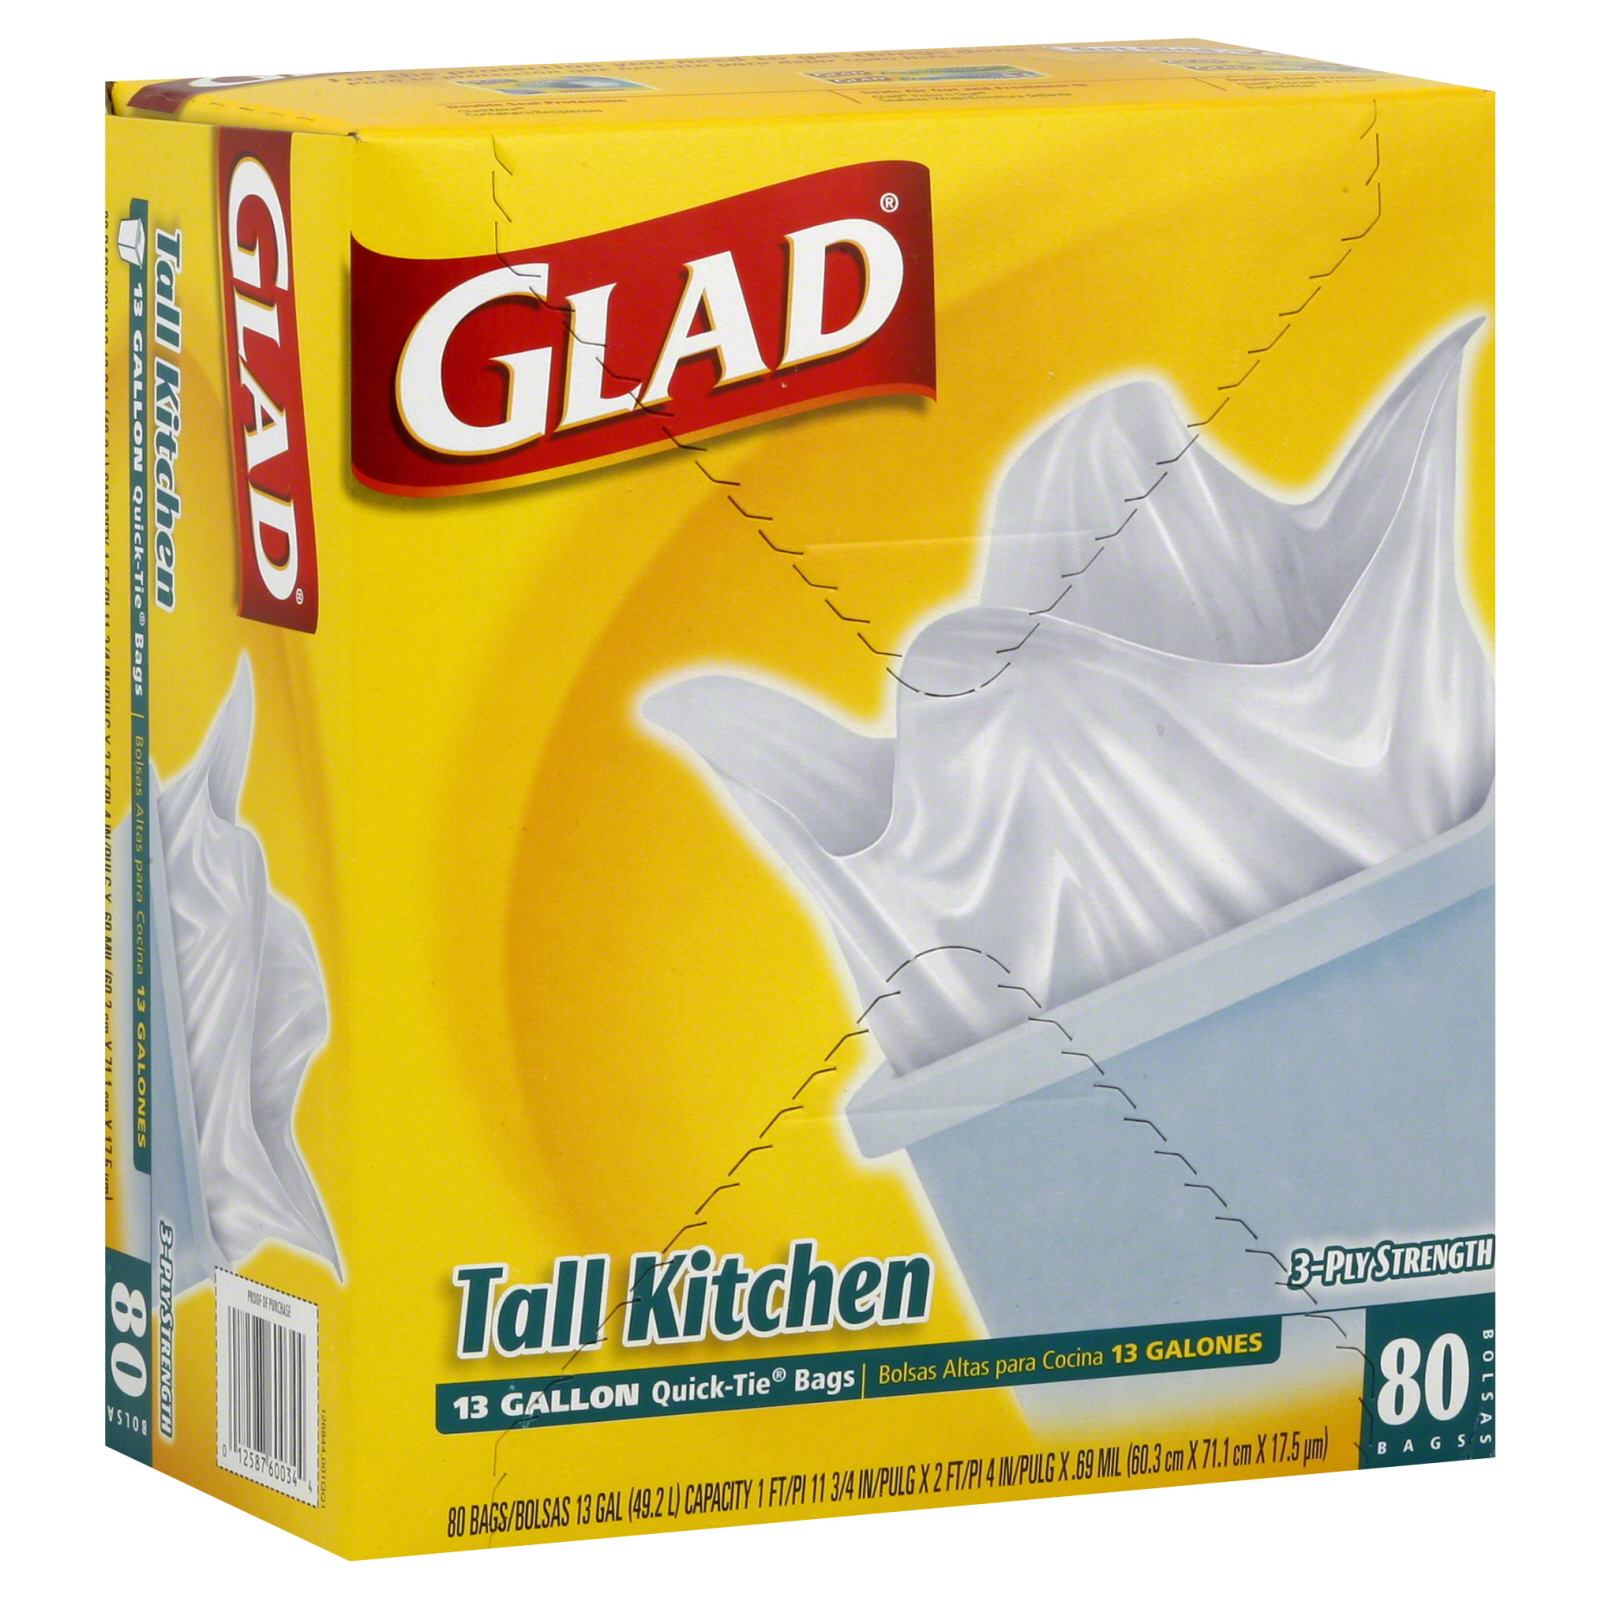 glad kitchen bags aid blender quick tie tall 13 gallon 80